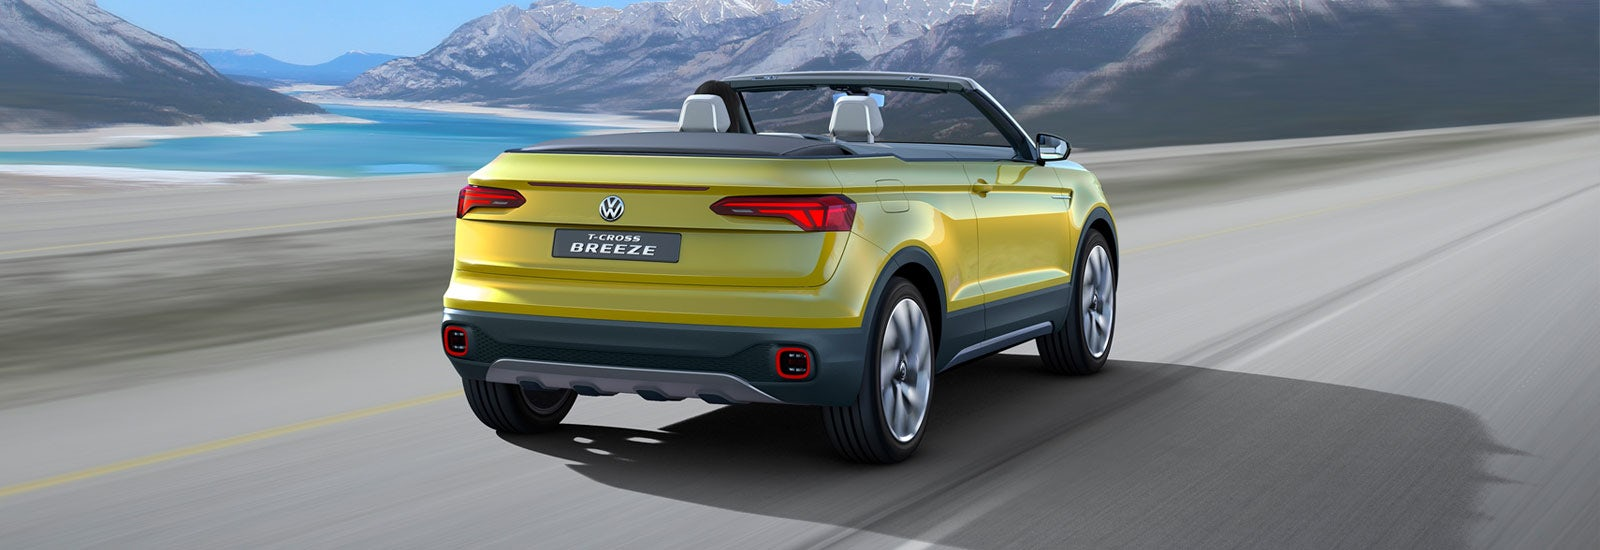 volkswagen t roc convertible price specs and release date. Black Bedroom Furniture Sets. Home Design Ideas